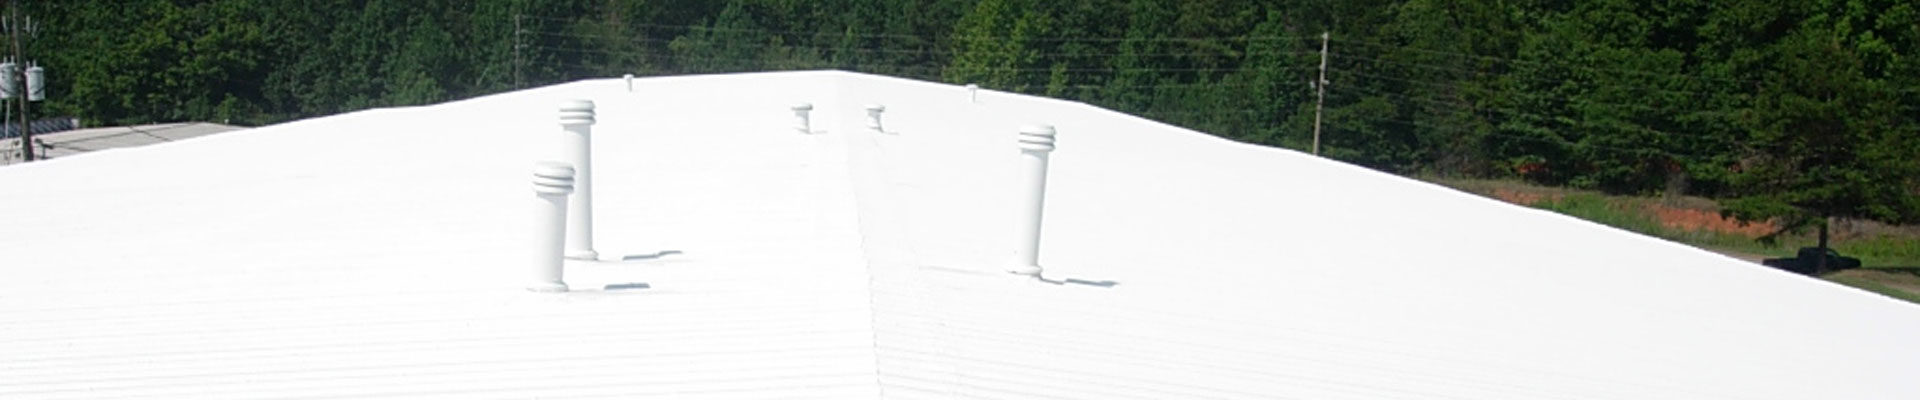 Commercial Roof Repair Vs Replacement Cost Analysis Weathercoat